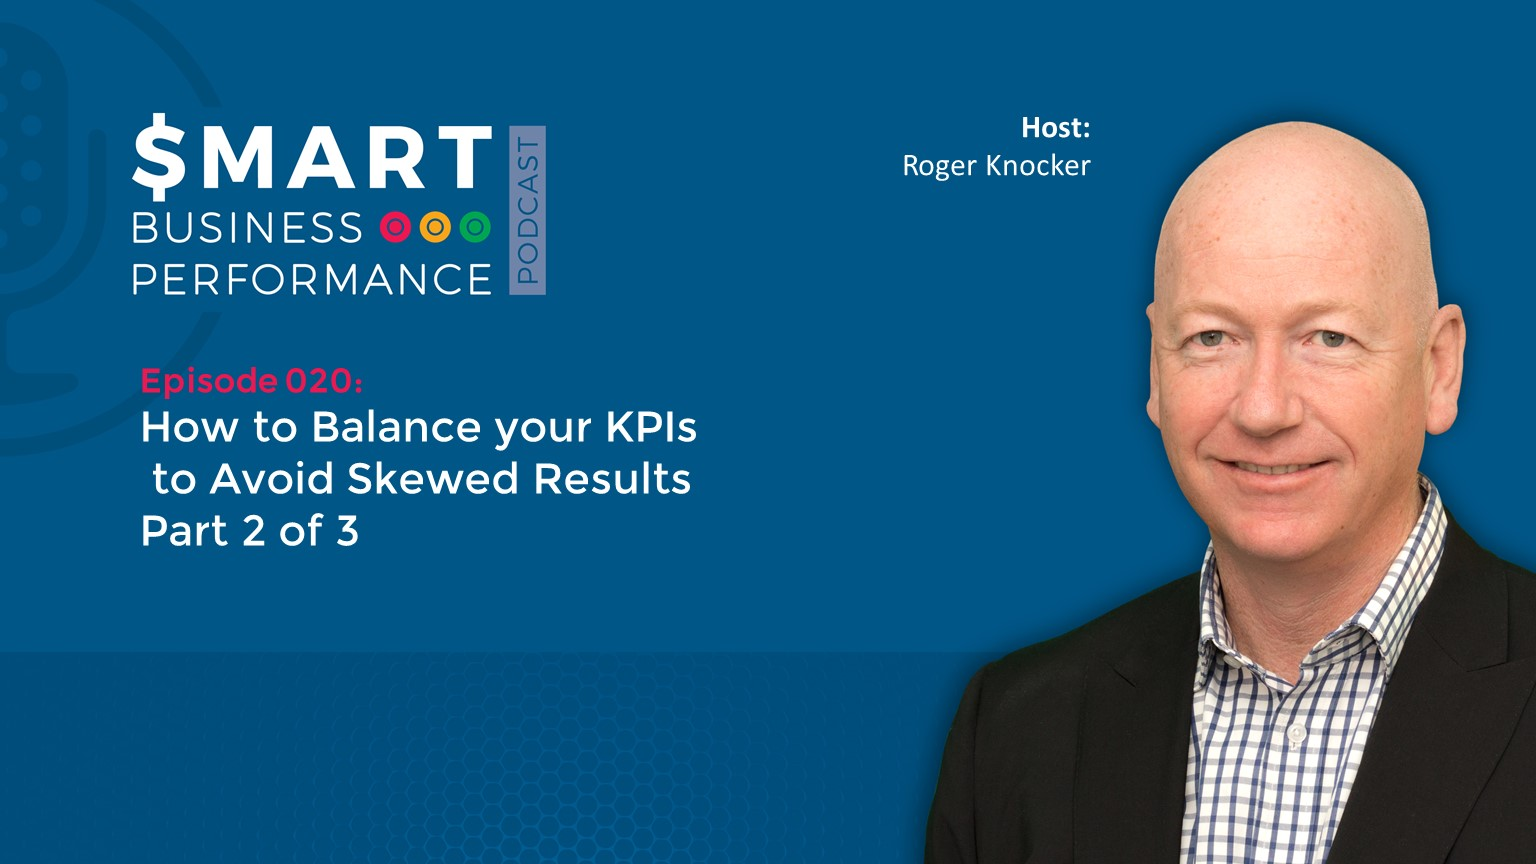 SBP021 How to Balance KPIs part 2 of 3